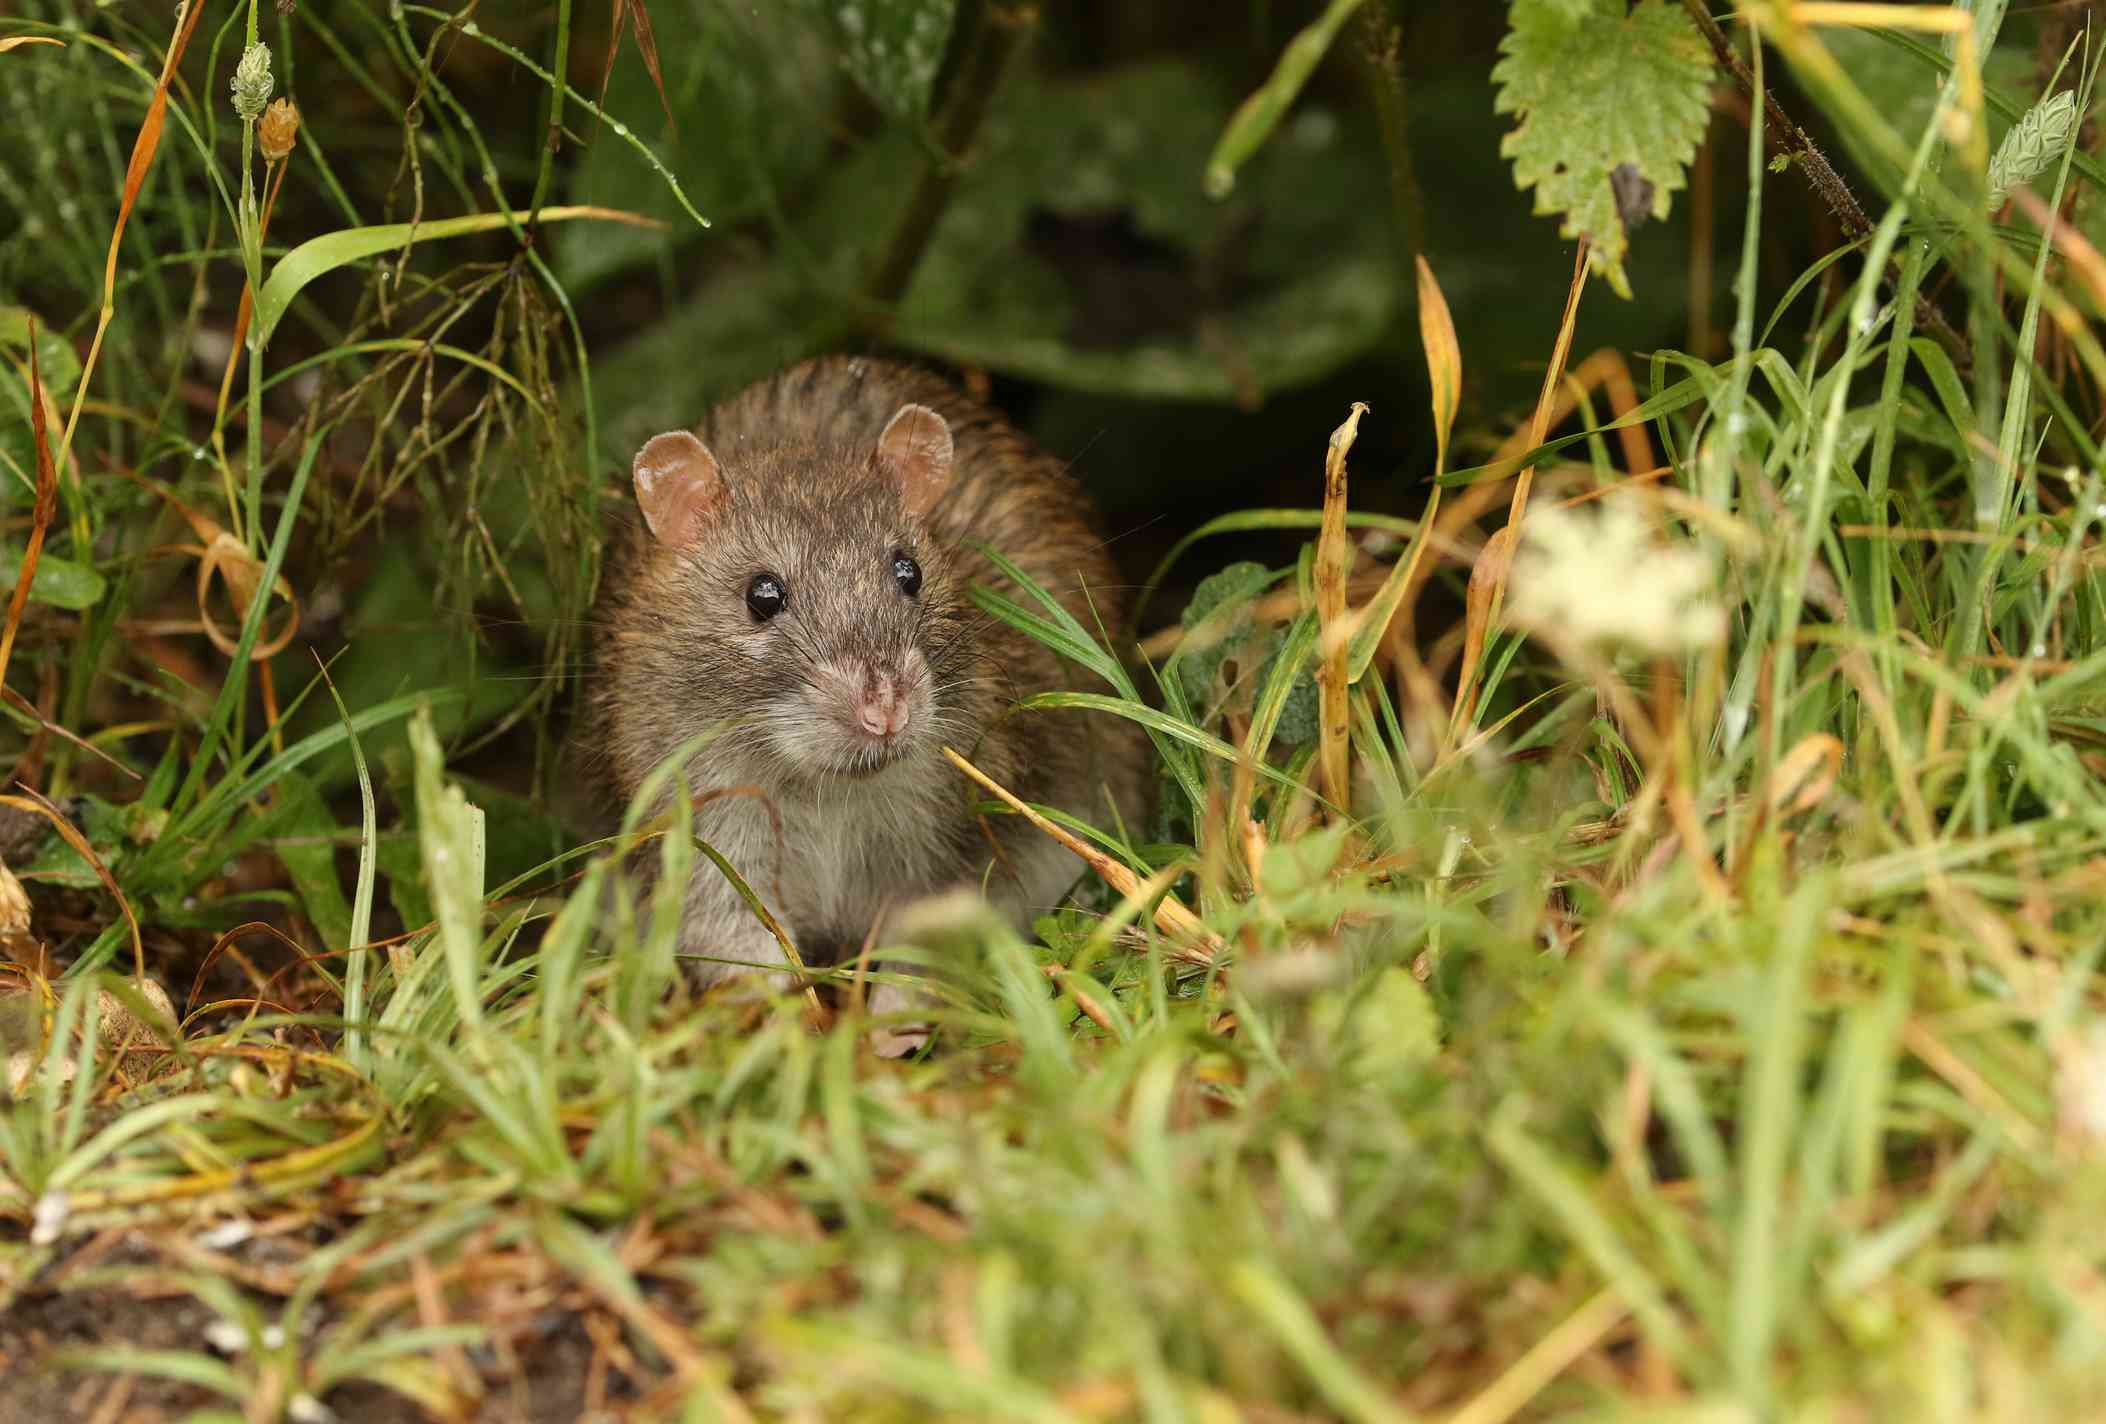 A brown rat crouching in a field of grass